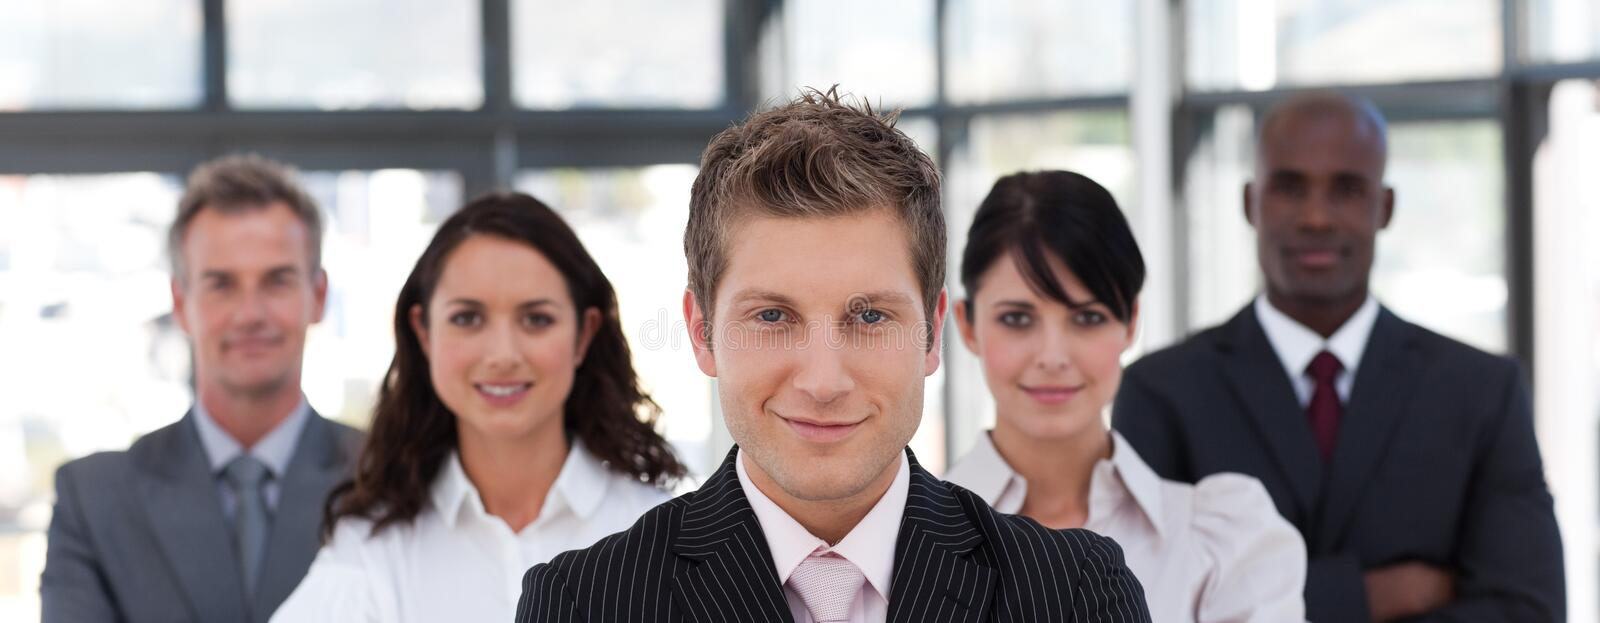 Confident business leader smiling royalty free stock images